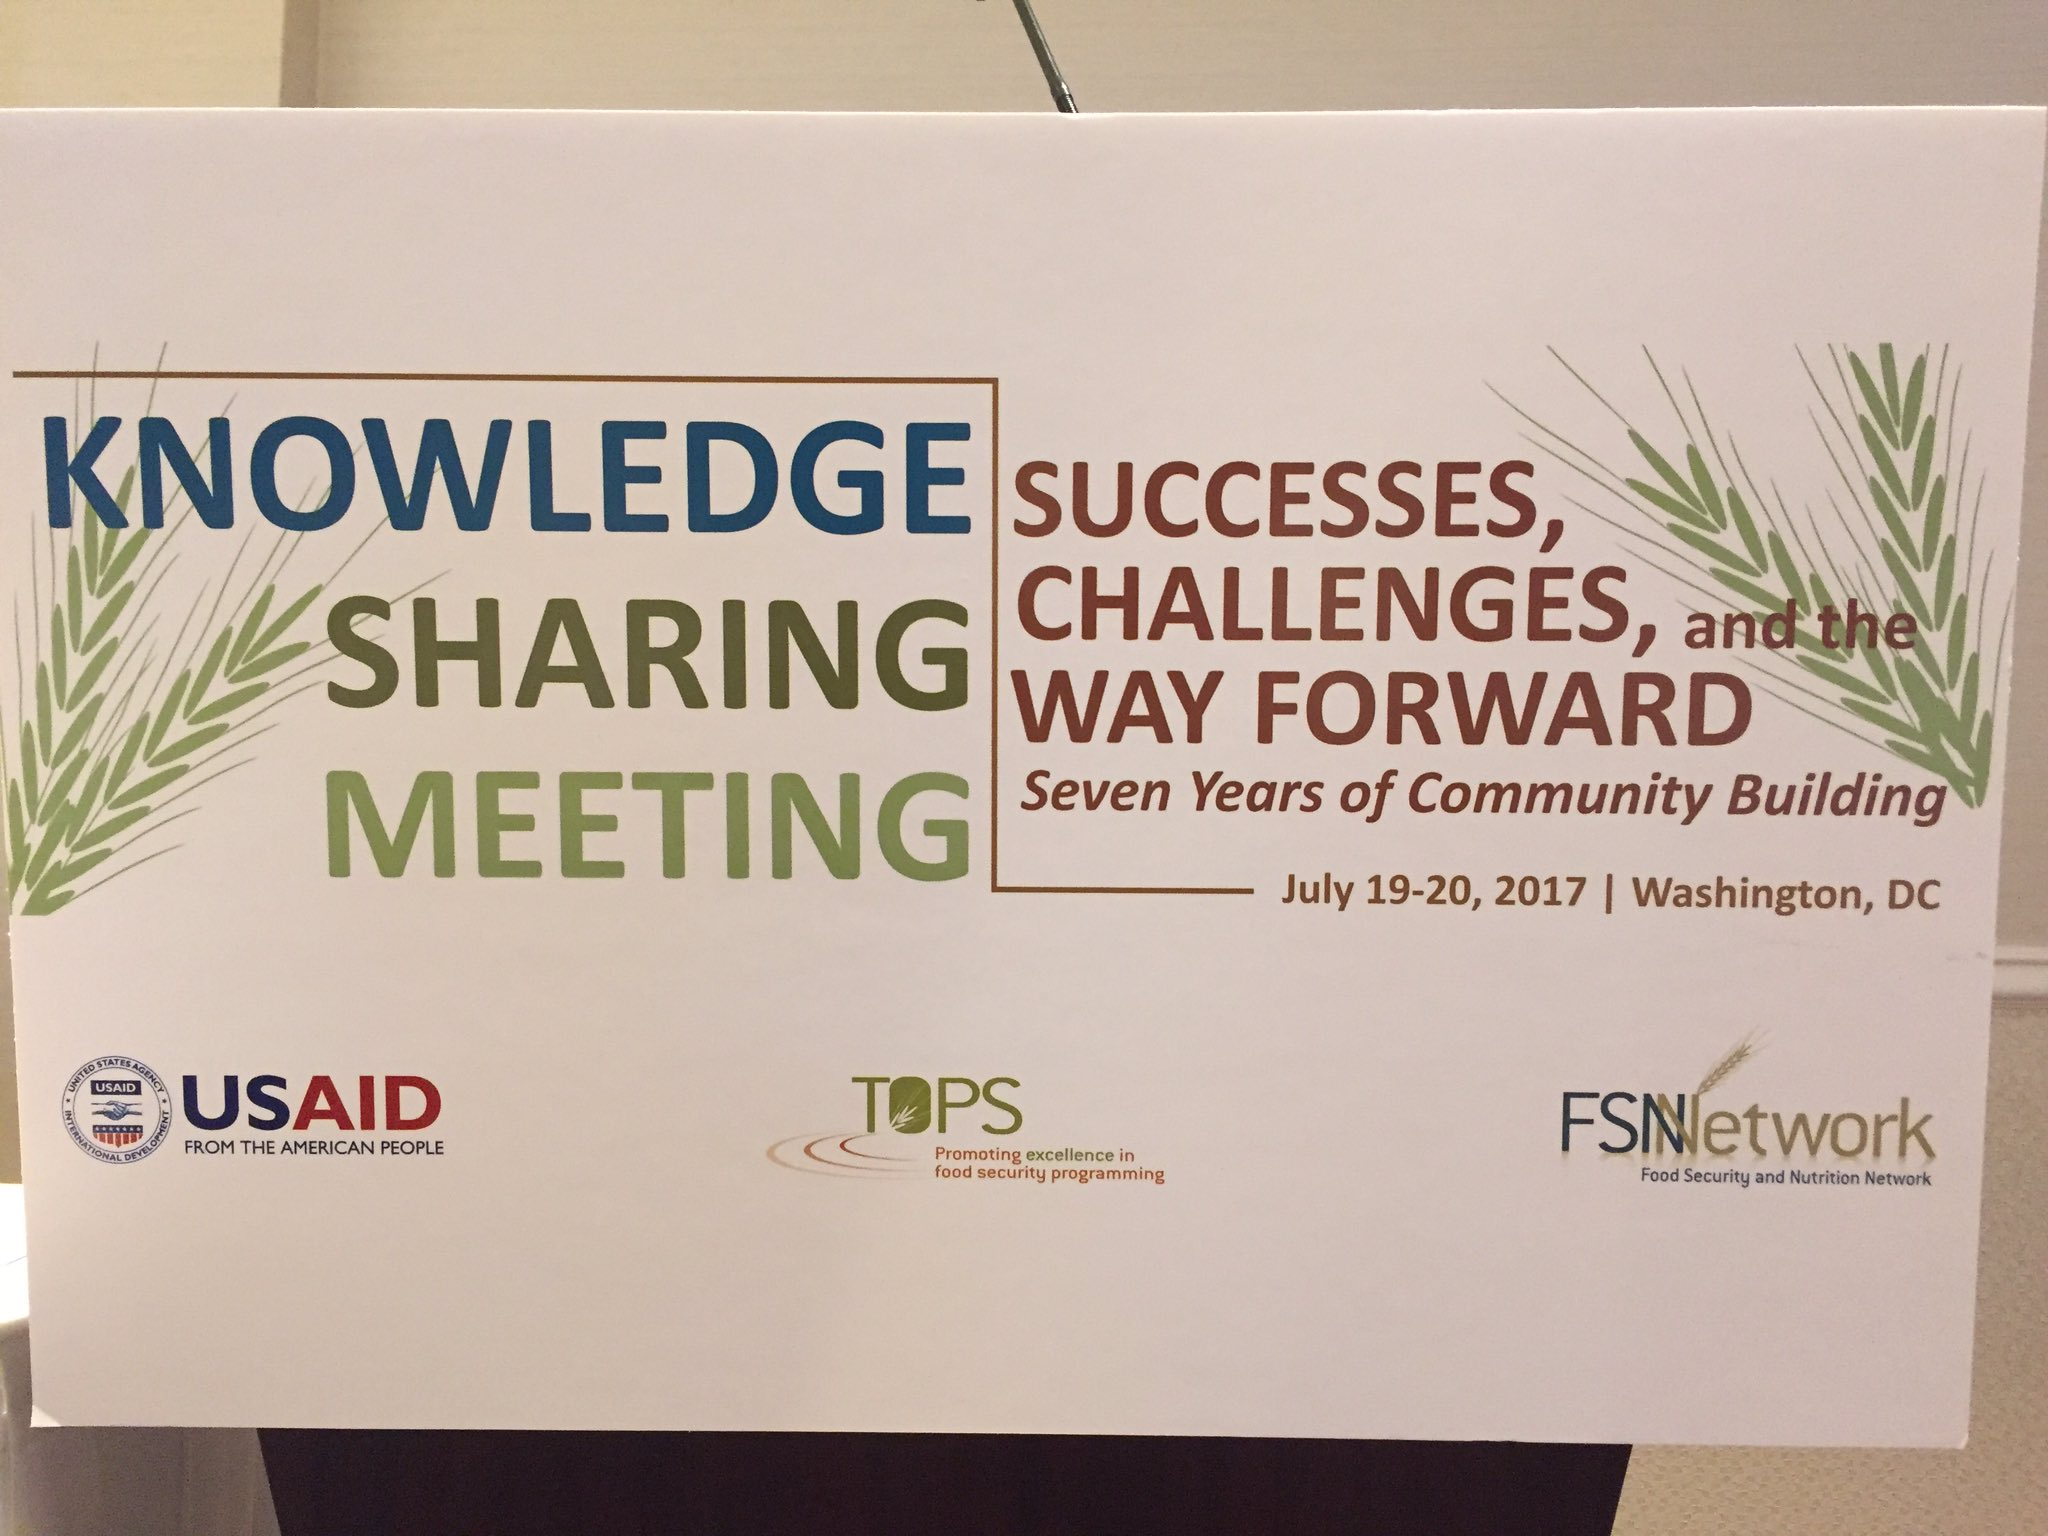 Thanks to @FSNnetwork for a fantastic two days filled with collaborative learning! #KSDC17 https://t.co/wHhFqL4Ra1